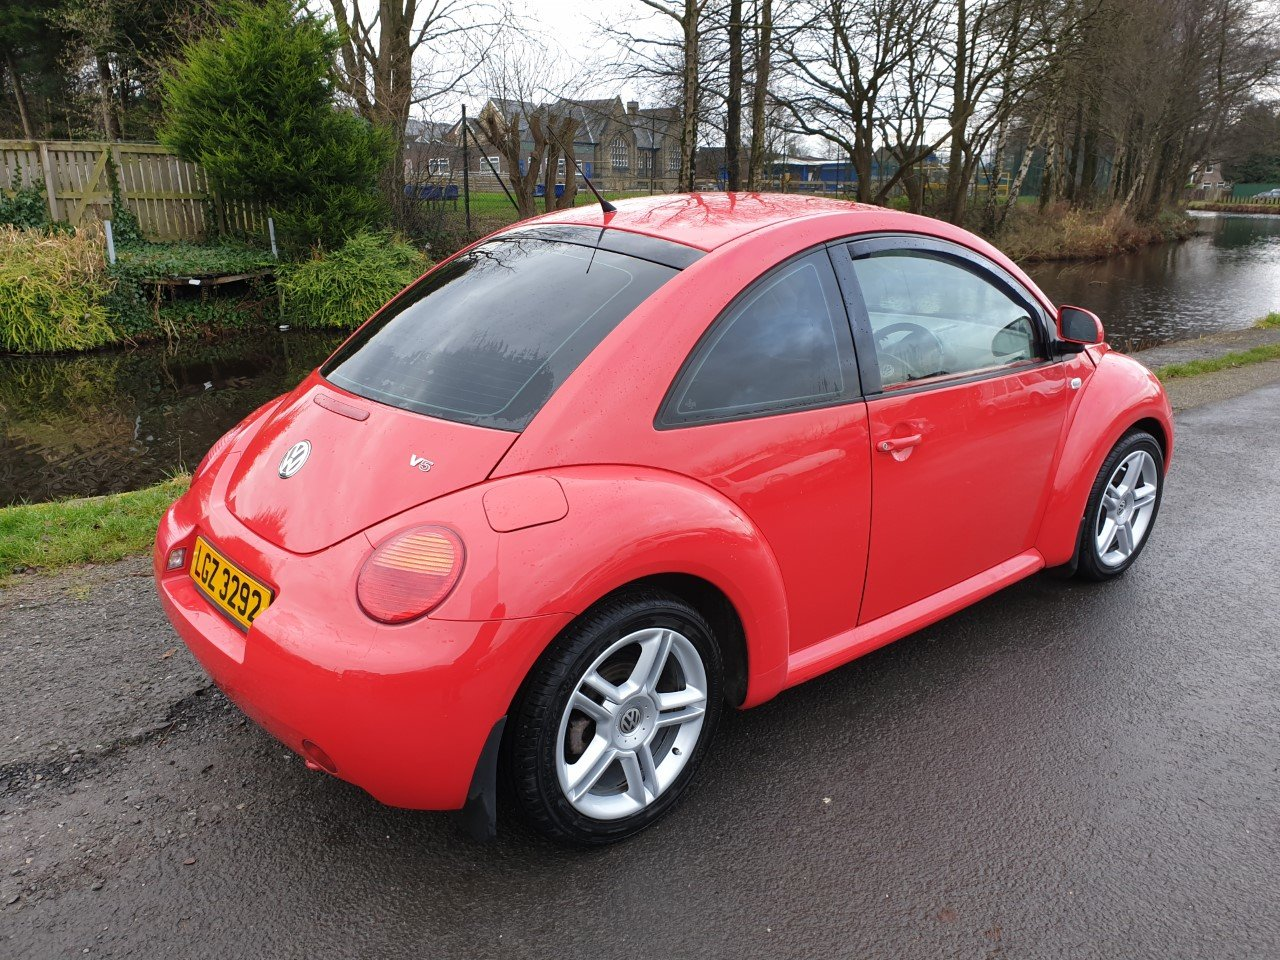 2002 Volkswagen Beetle V5 2.3 With full read and black leather. For Sale (picture 3 of 6)